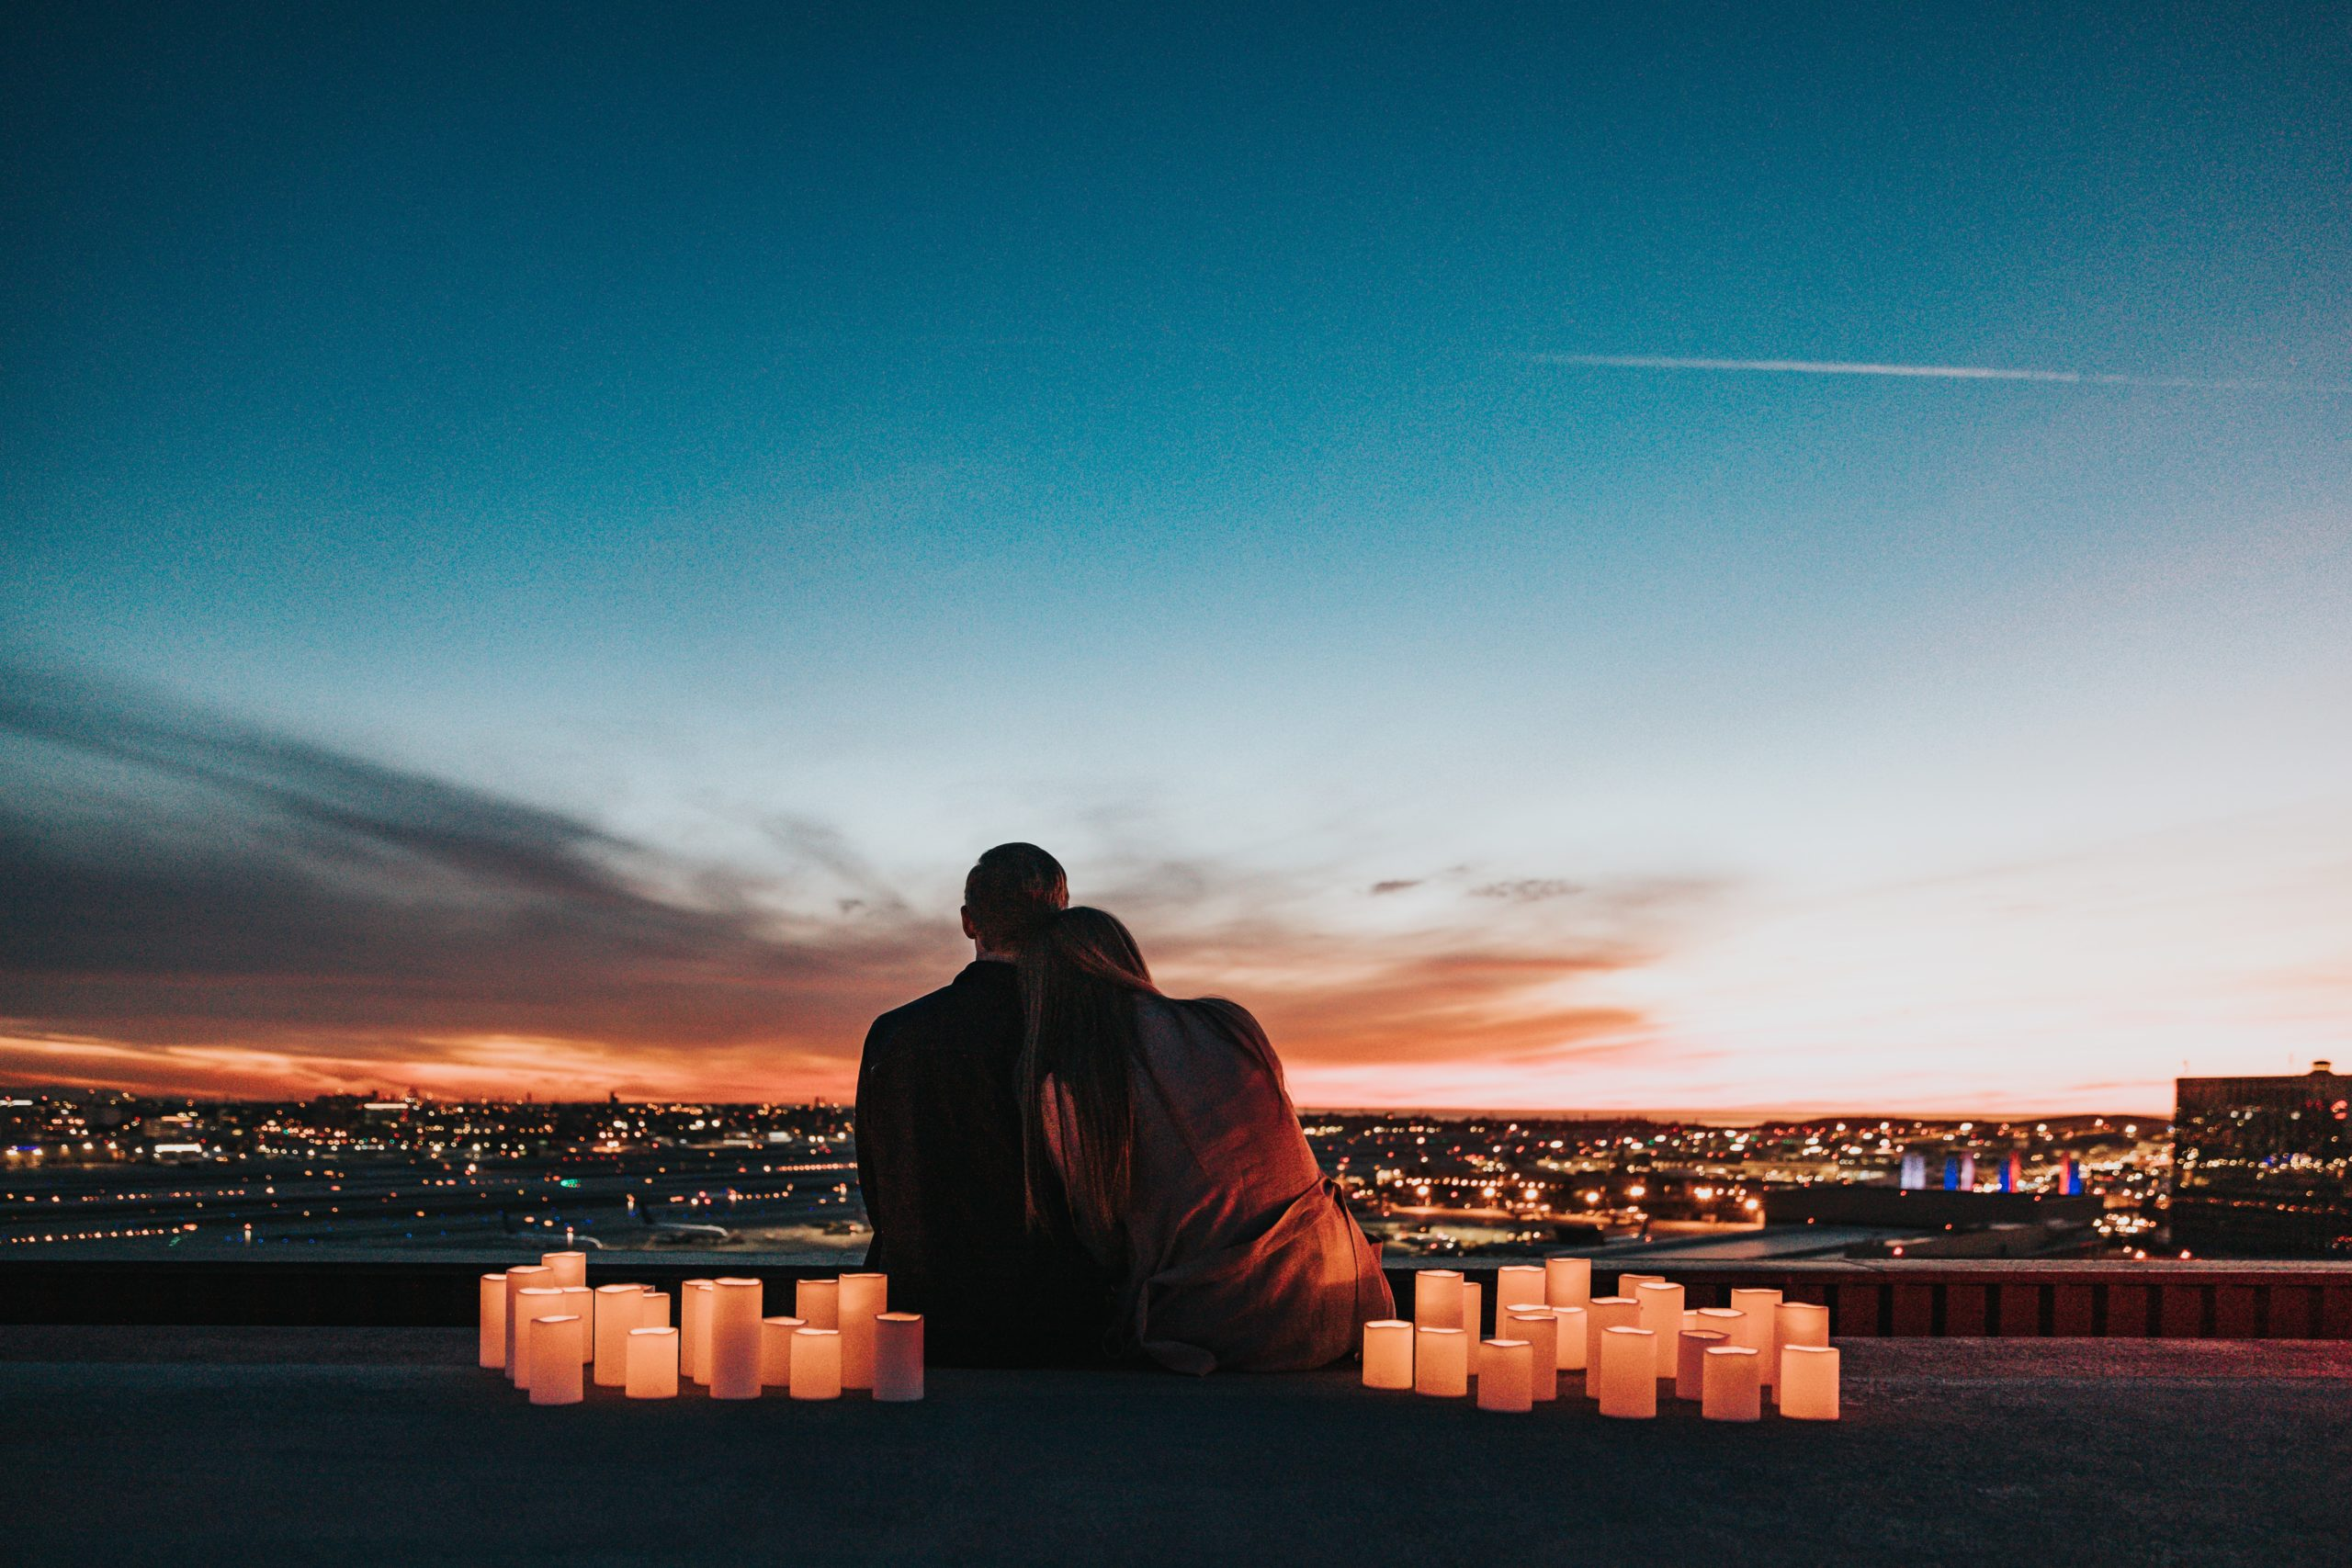 777 in twin flame relationship